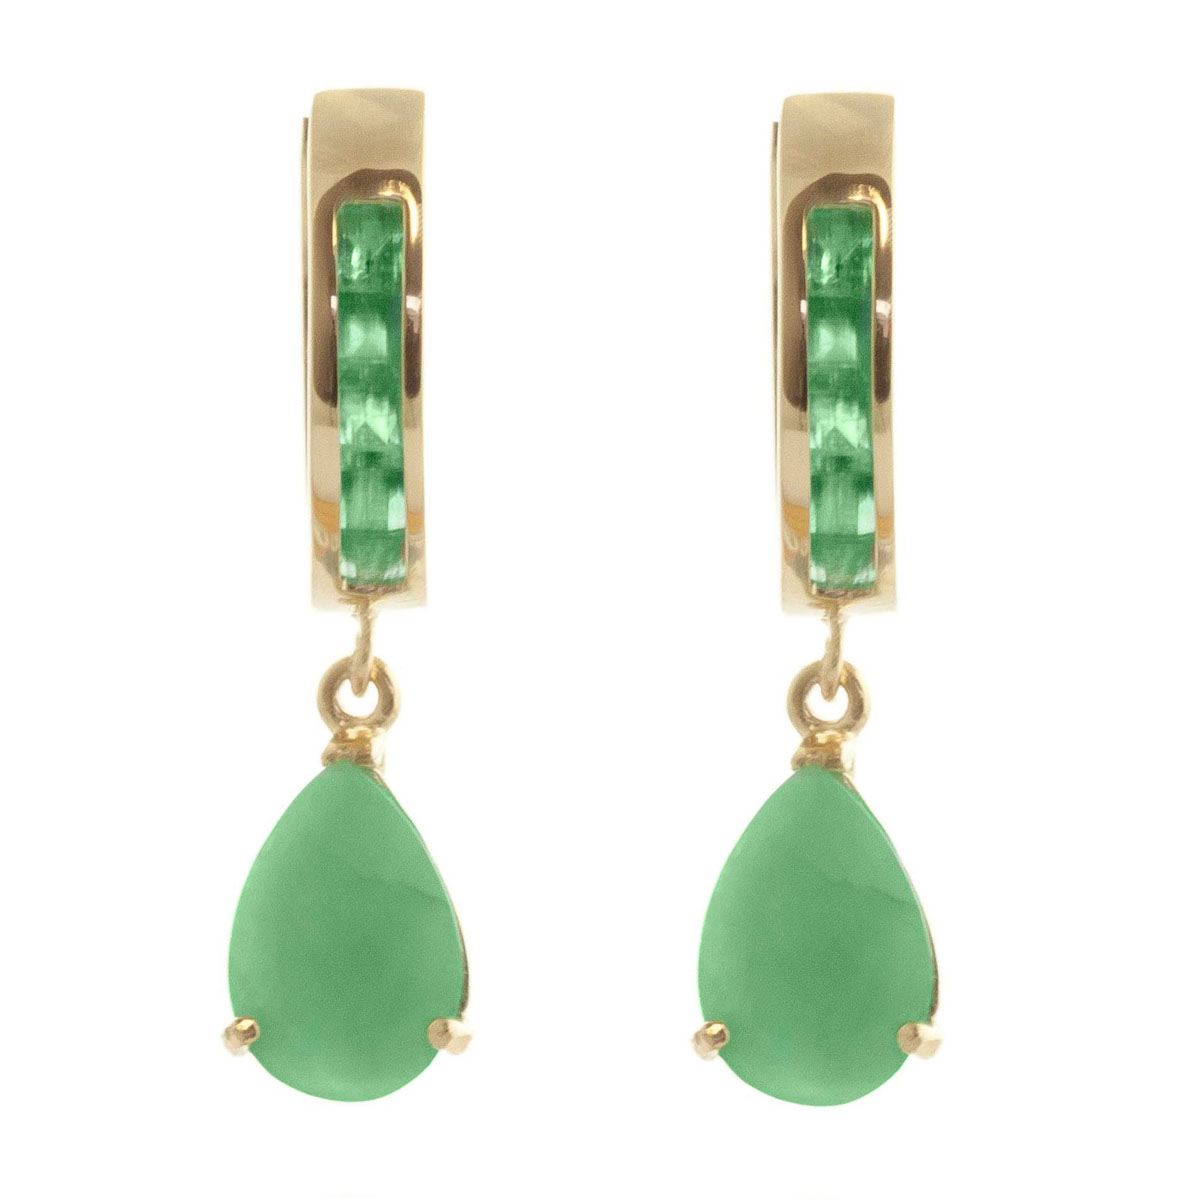 Emerald Huggie Drop Earrings 1.3 ctw in 9ct Gold